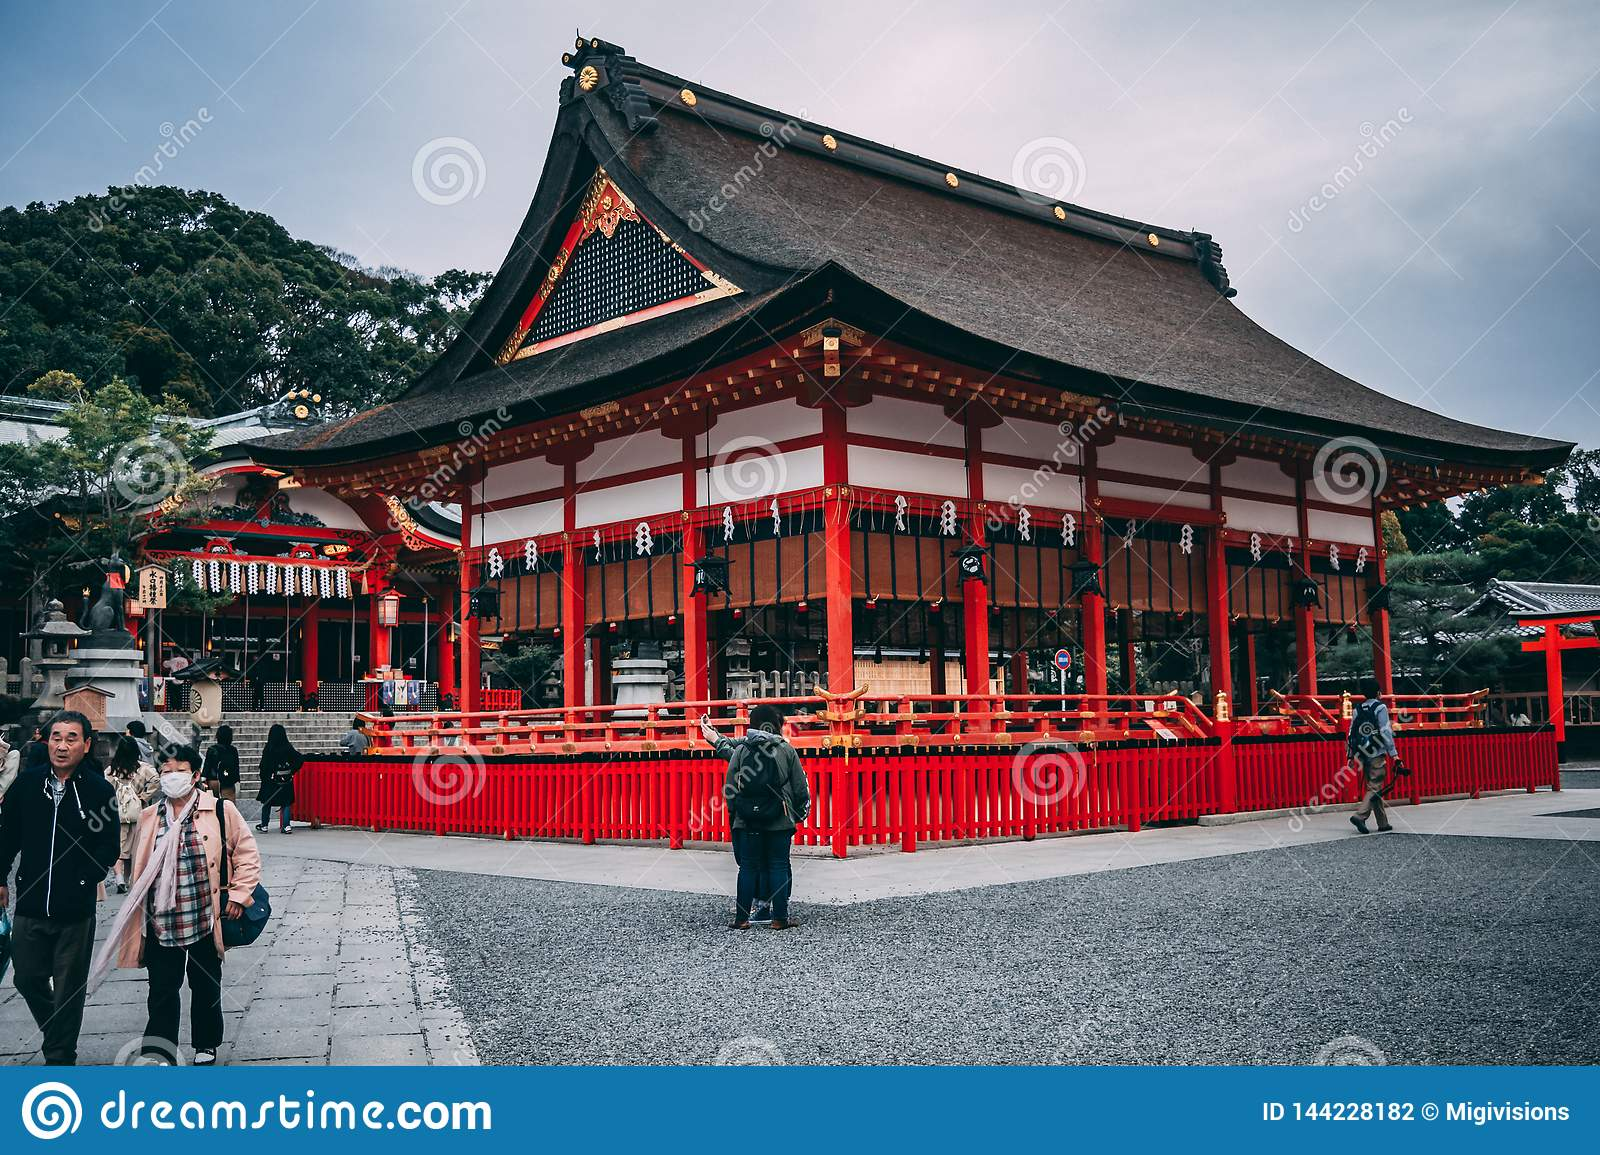 Ein roter Tempel in Kyoto, Japan